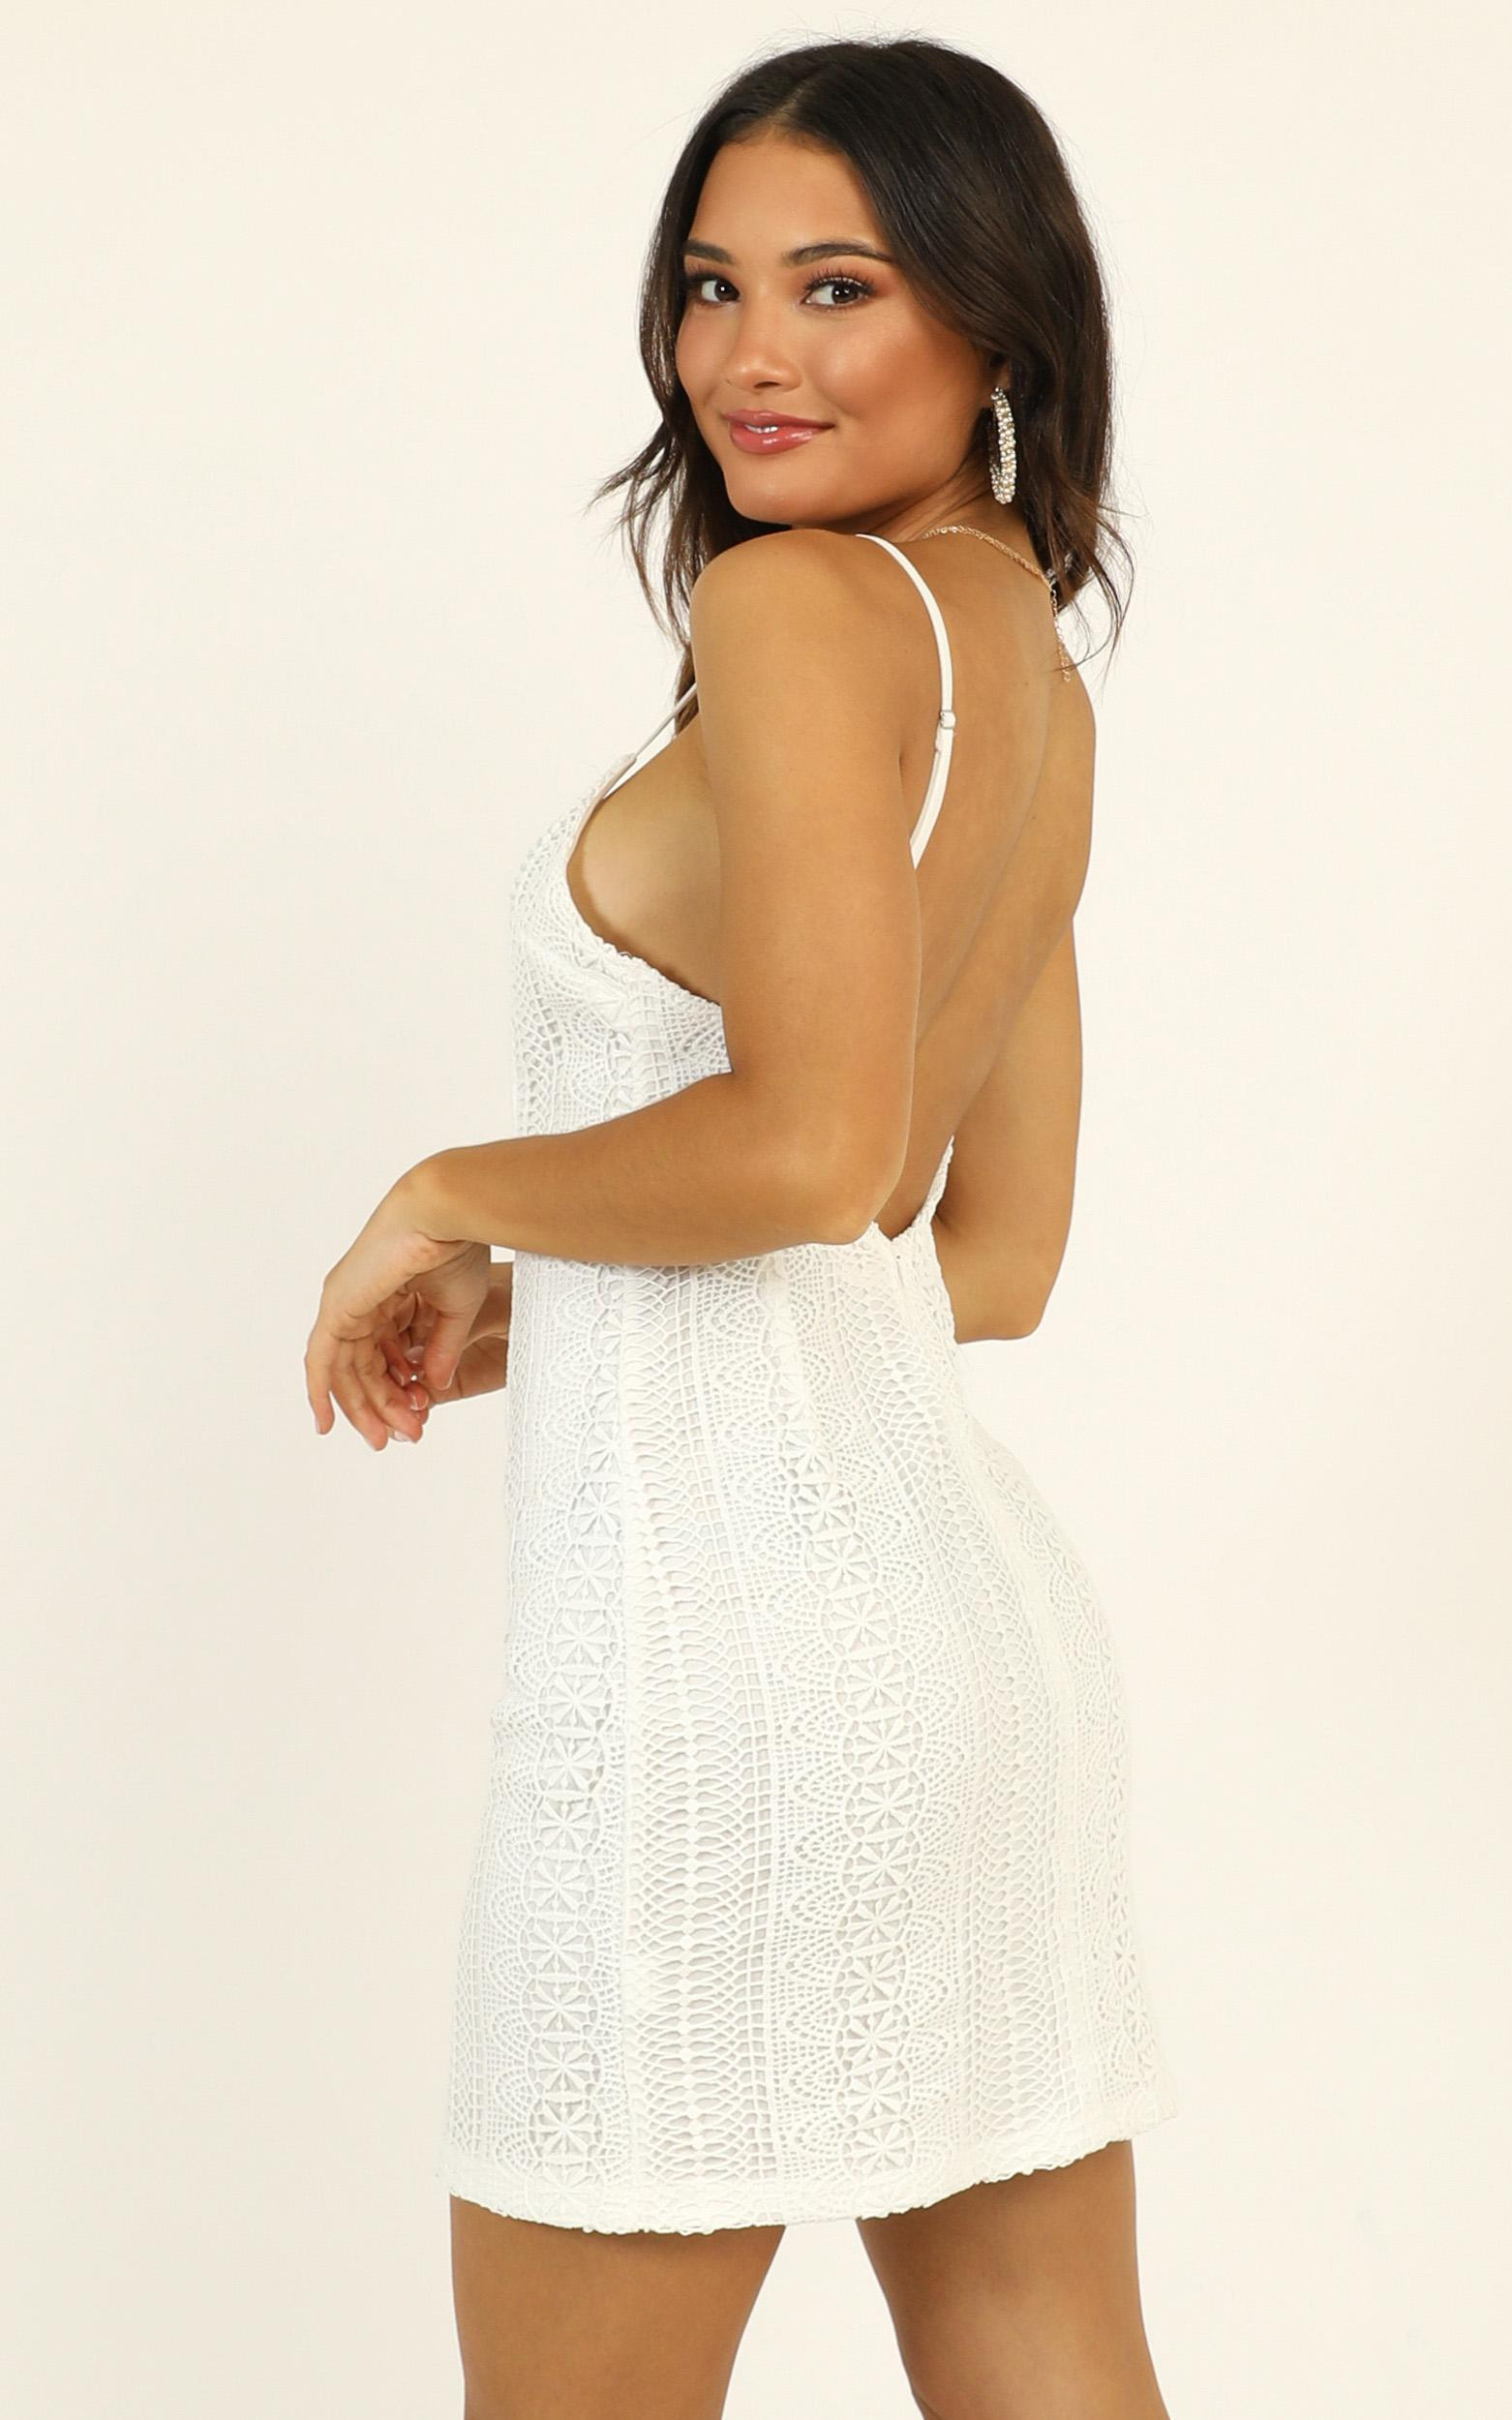 The Day I Fell In Love Dress in white lace - 20 (XXXXL), White, hi-res image number null